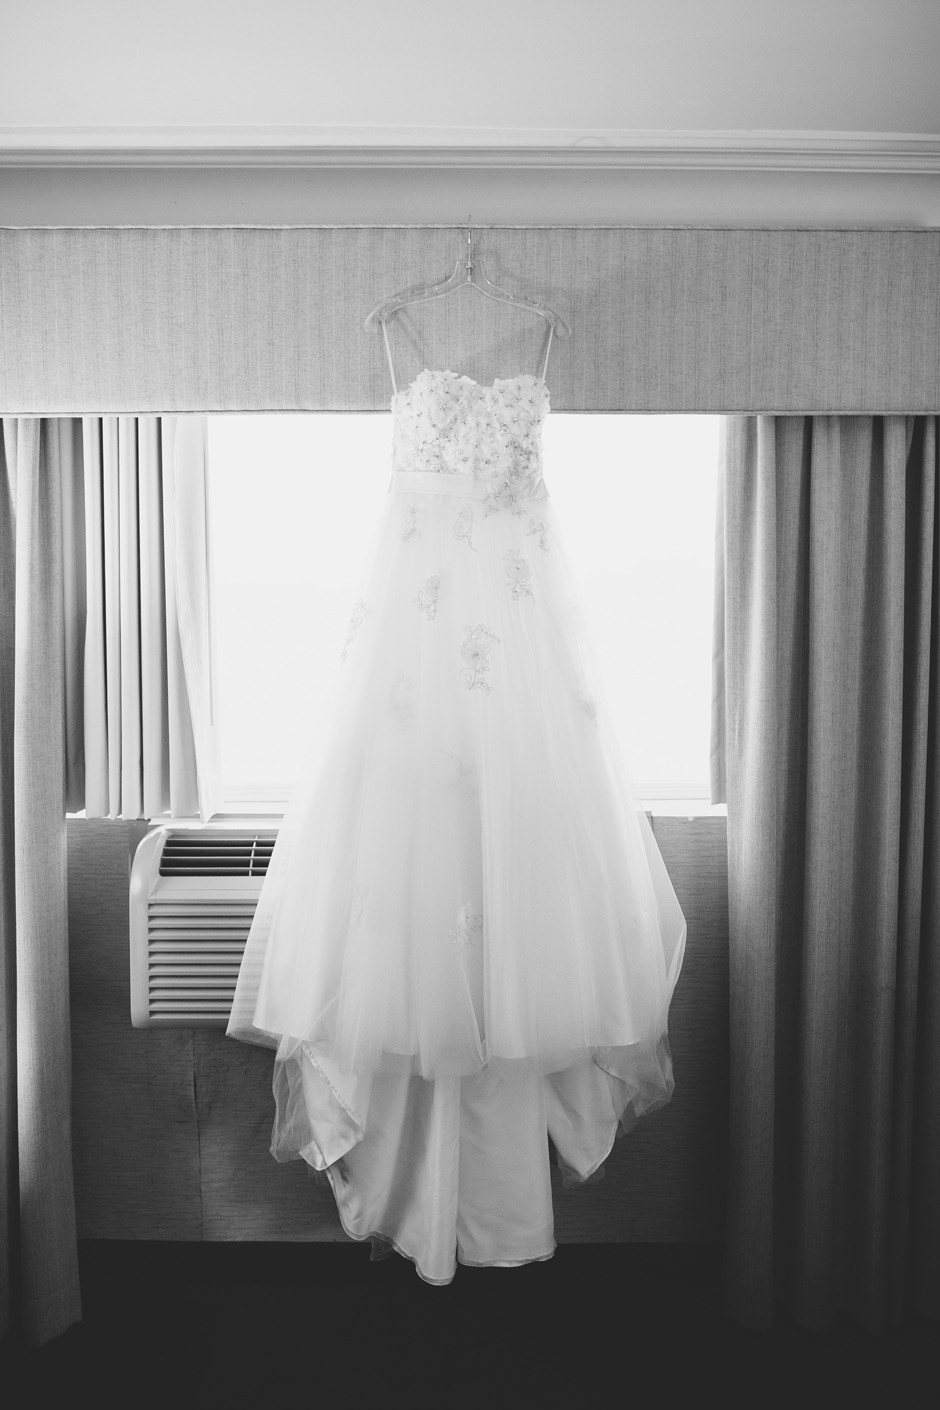 Wedding dress hanging on hangar in hotel room